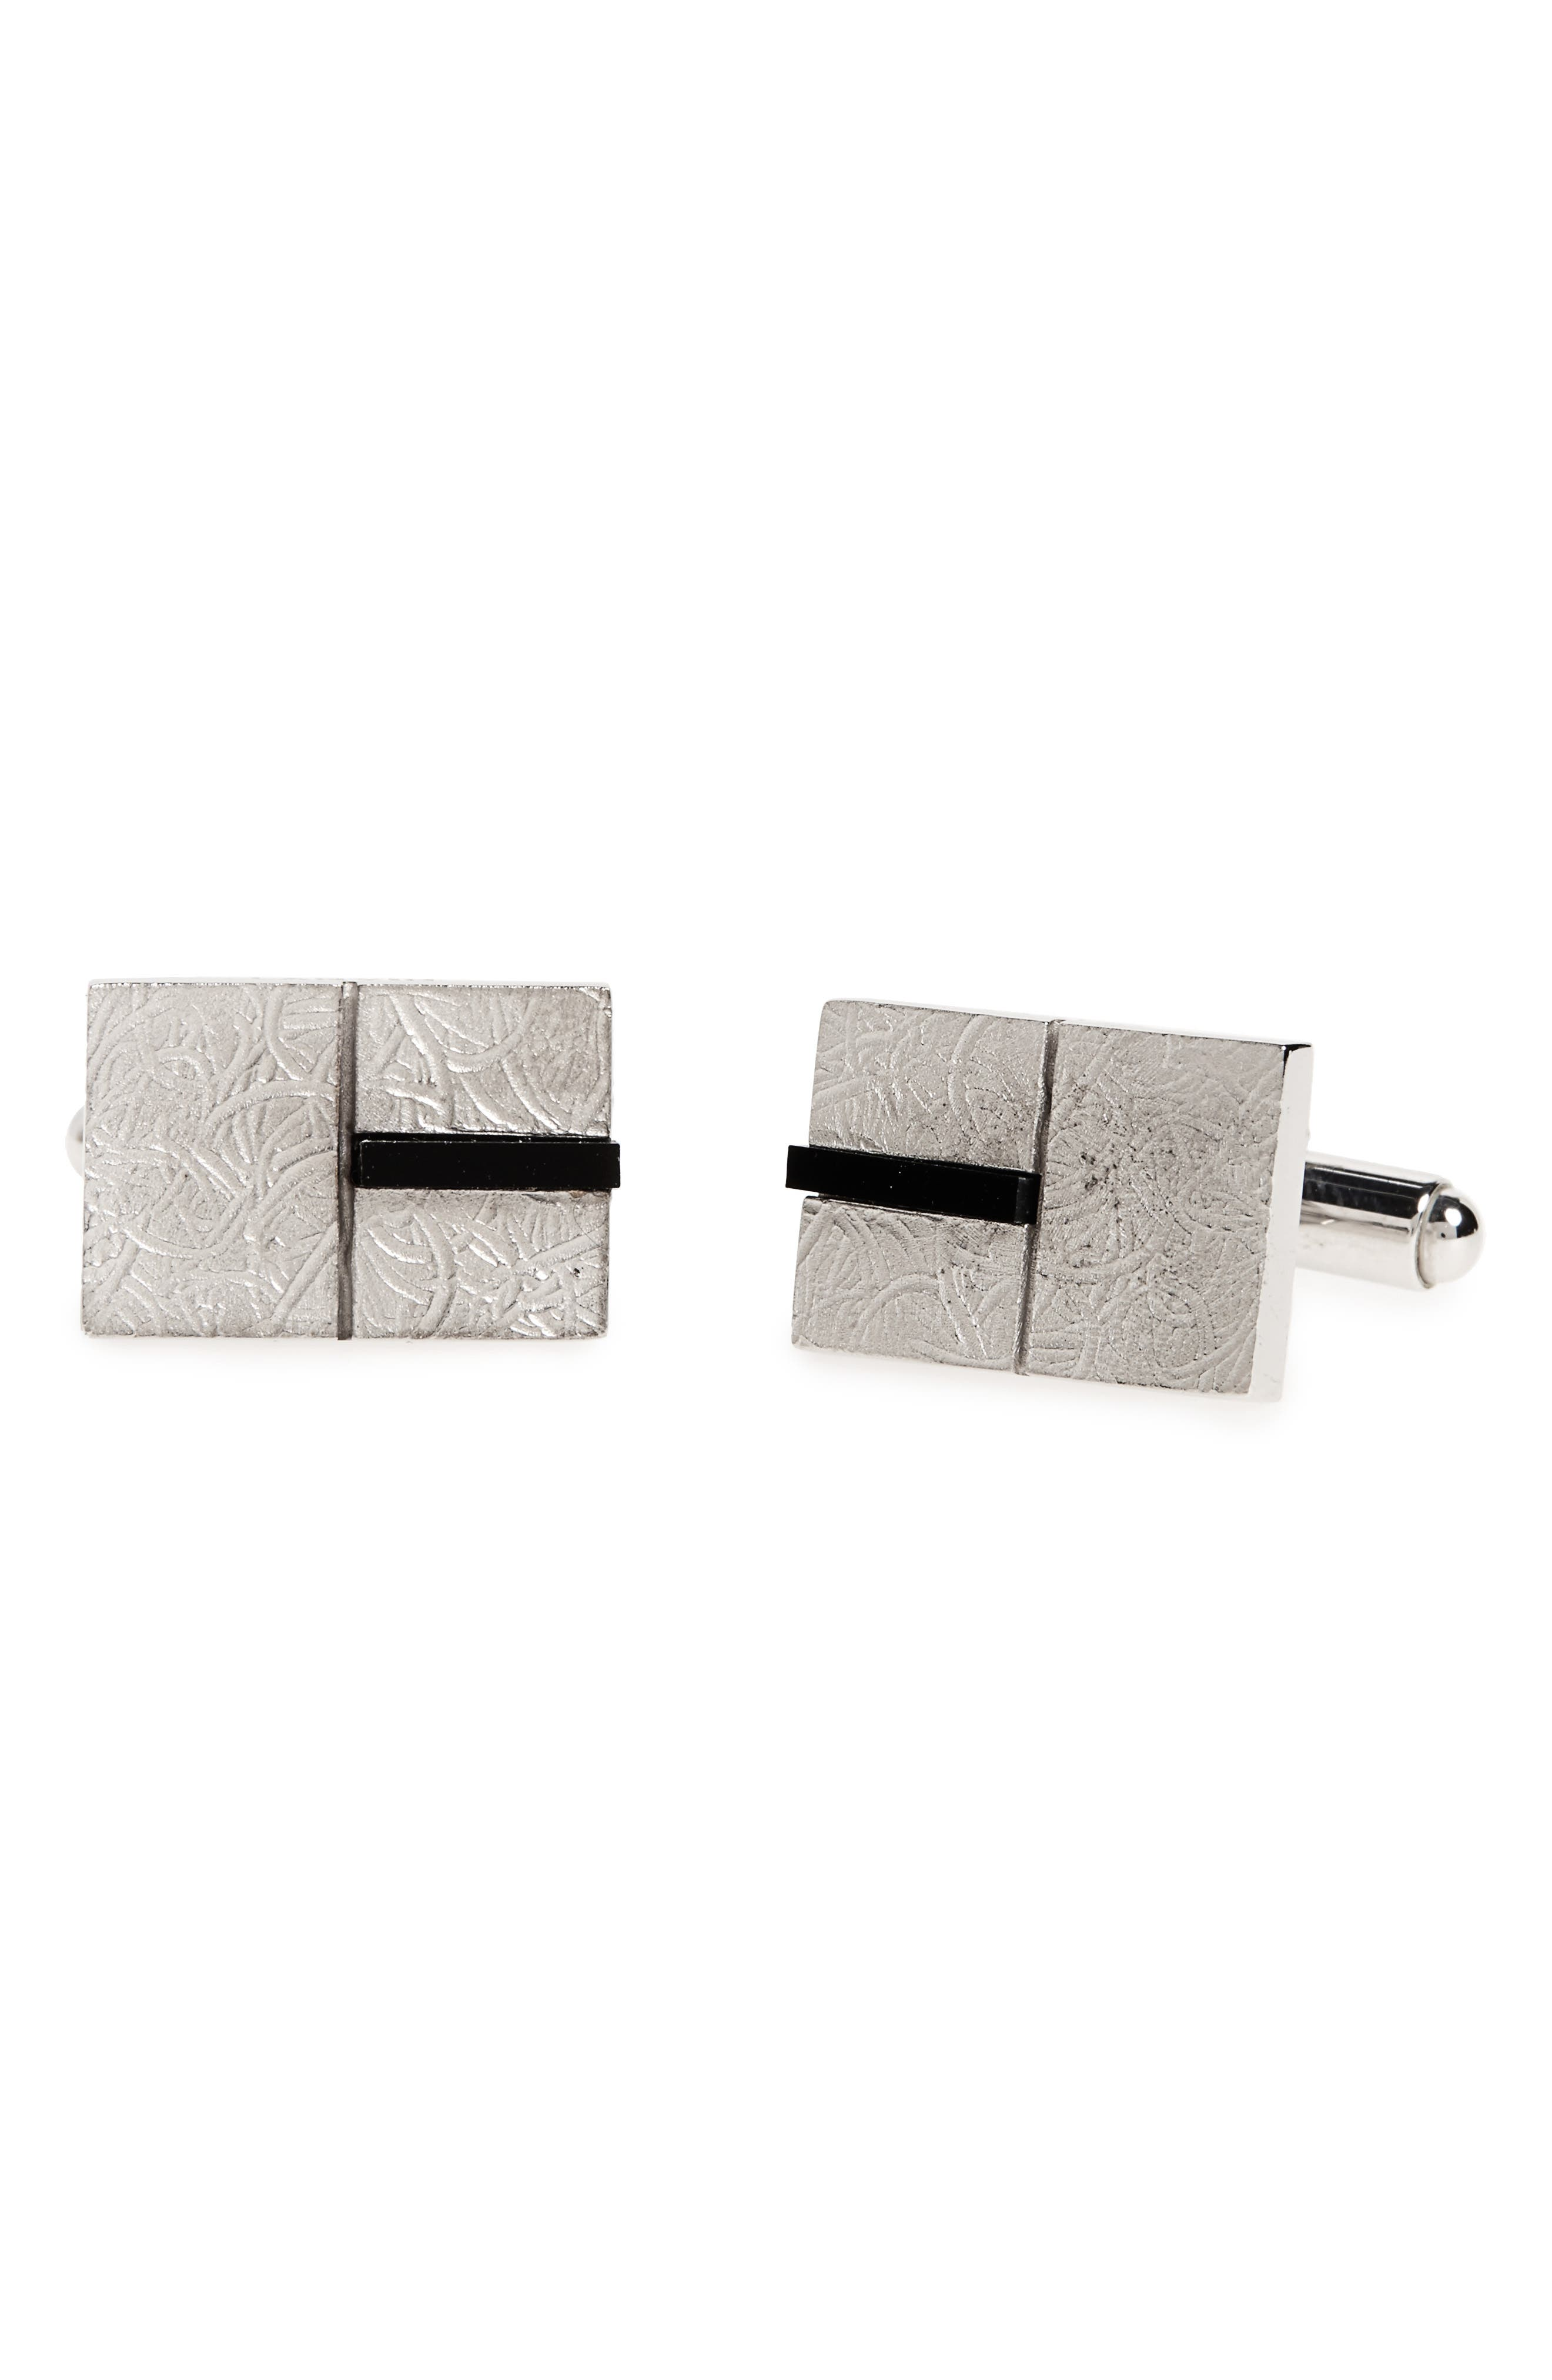 LANVIN Squares Cuff Links in Gray